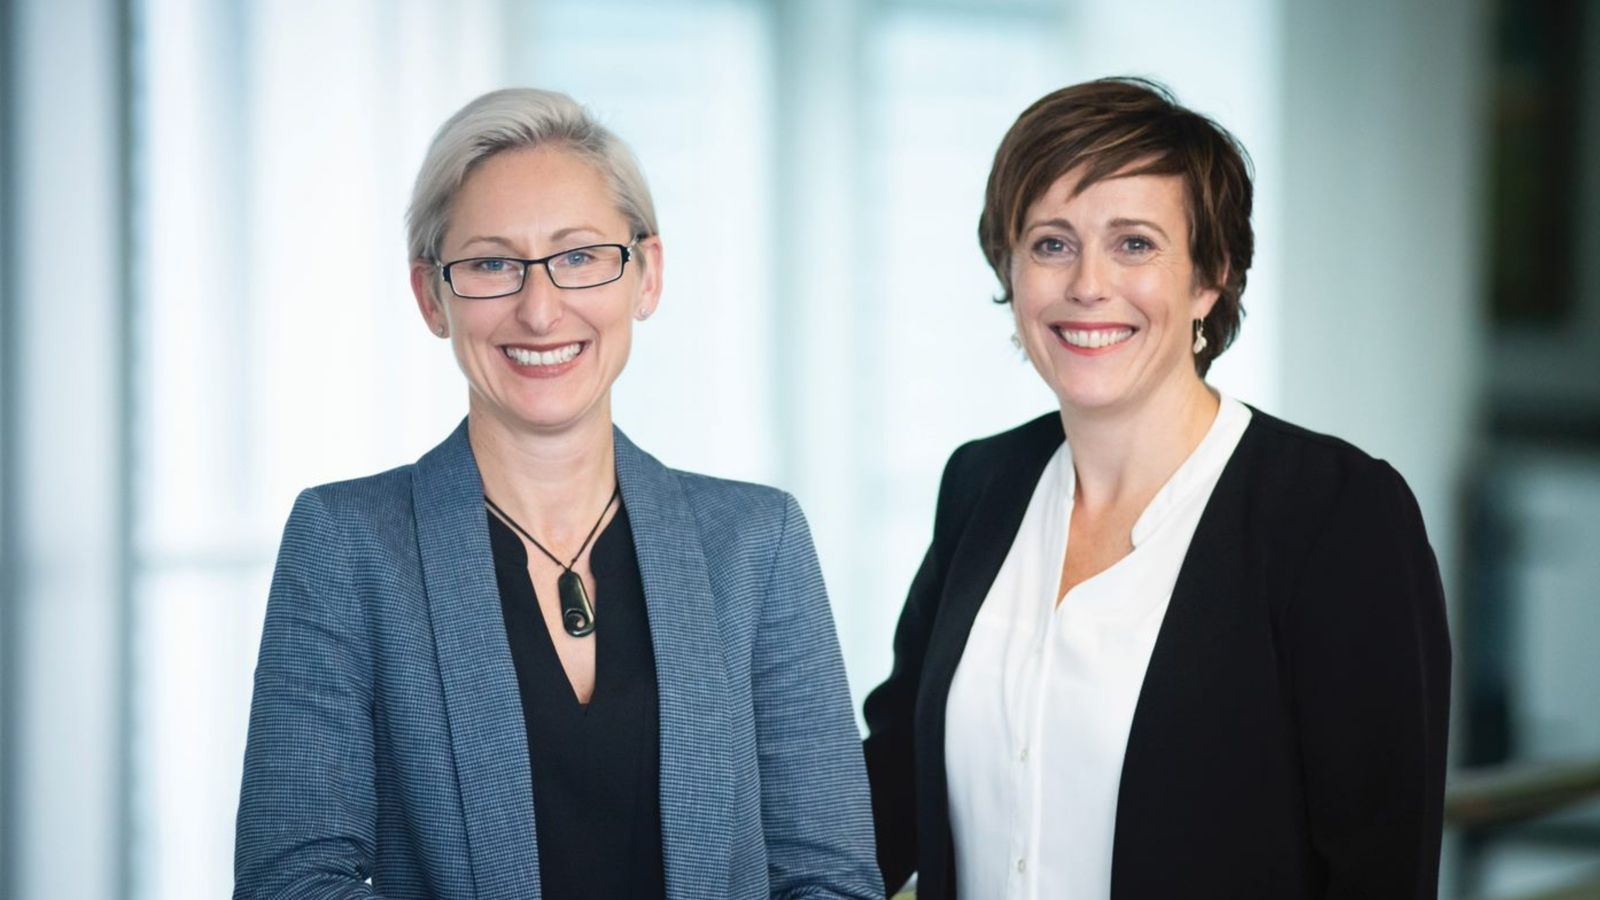 Caz Helen and Helen Rook are standing side by side, in professional atire, infront of a white background.